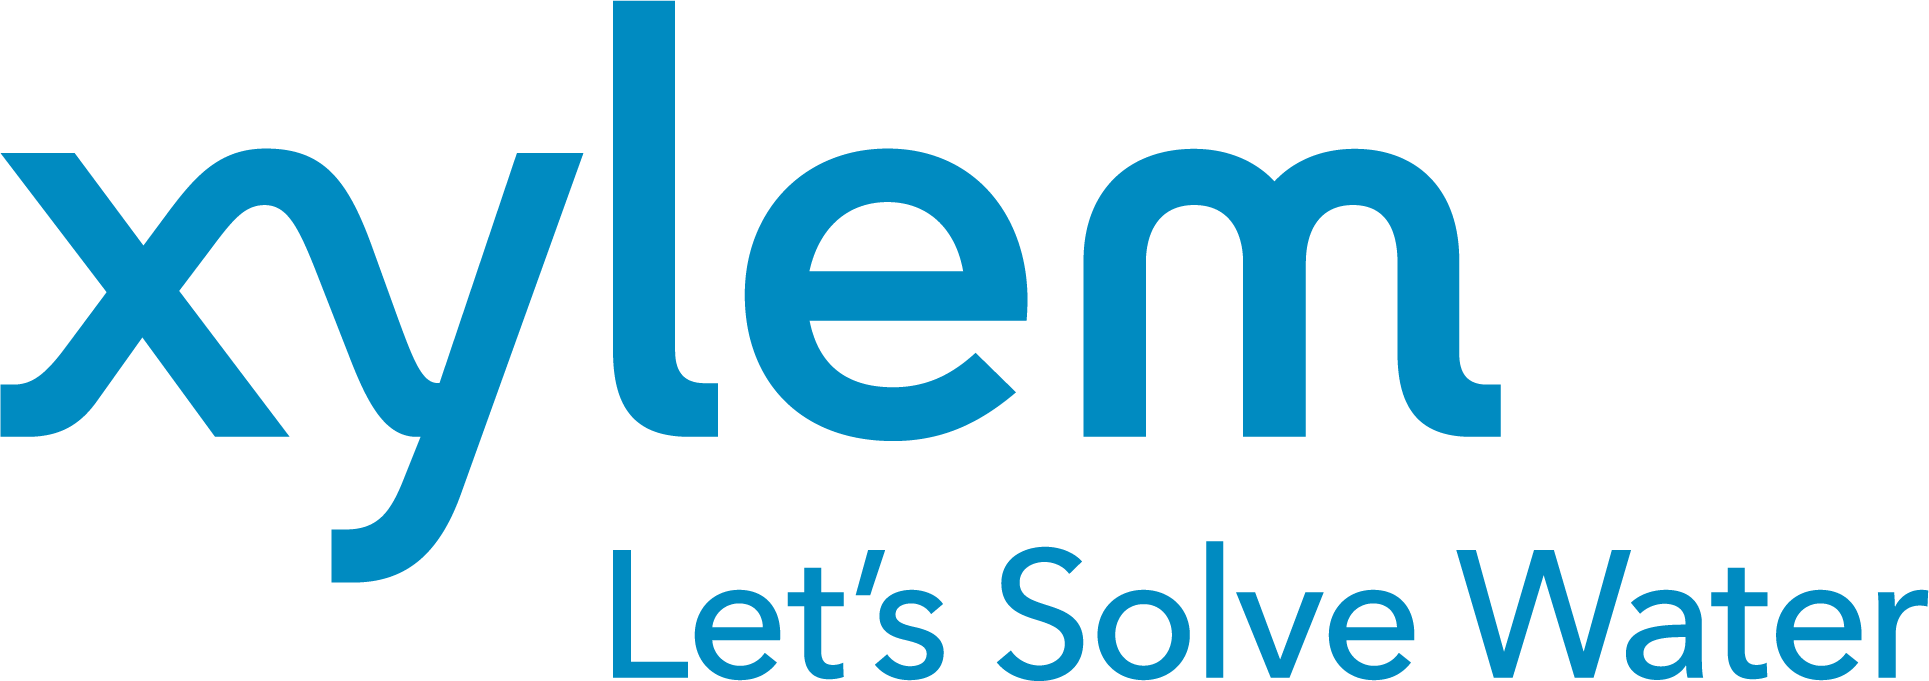 Xylem_Corporate Logo.png